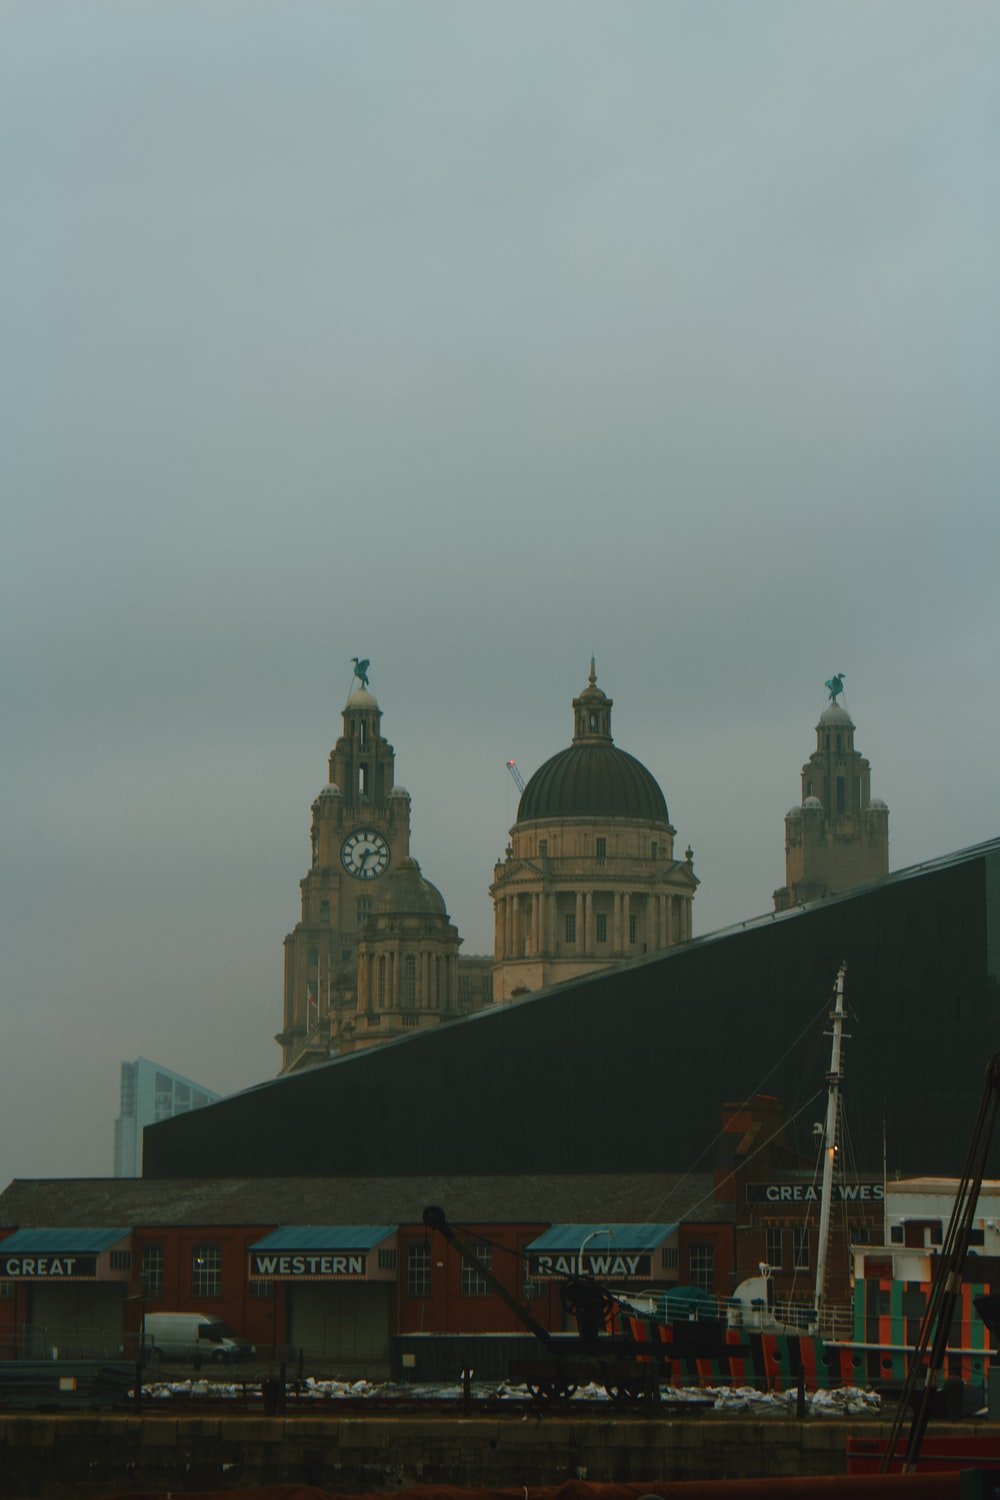 brown and black dome building under gray sky